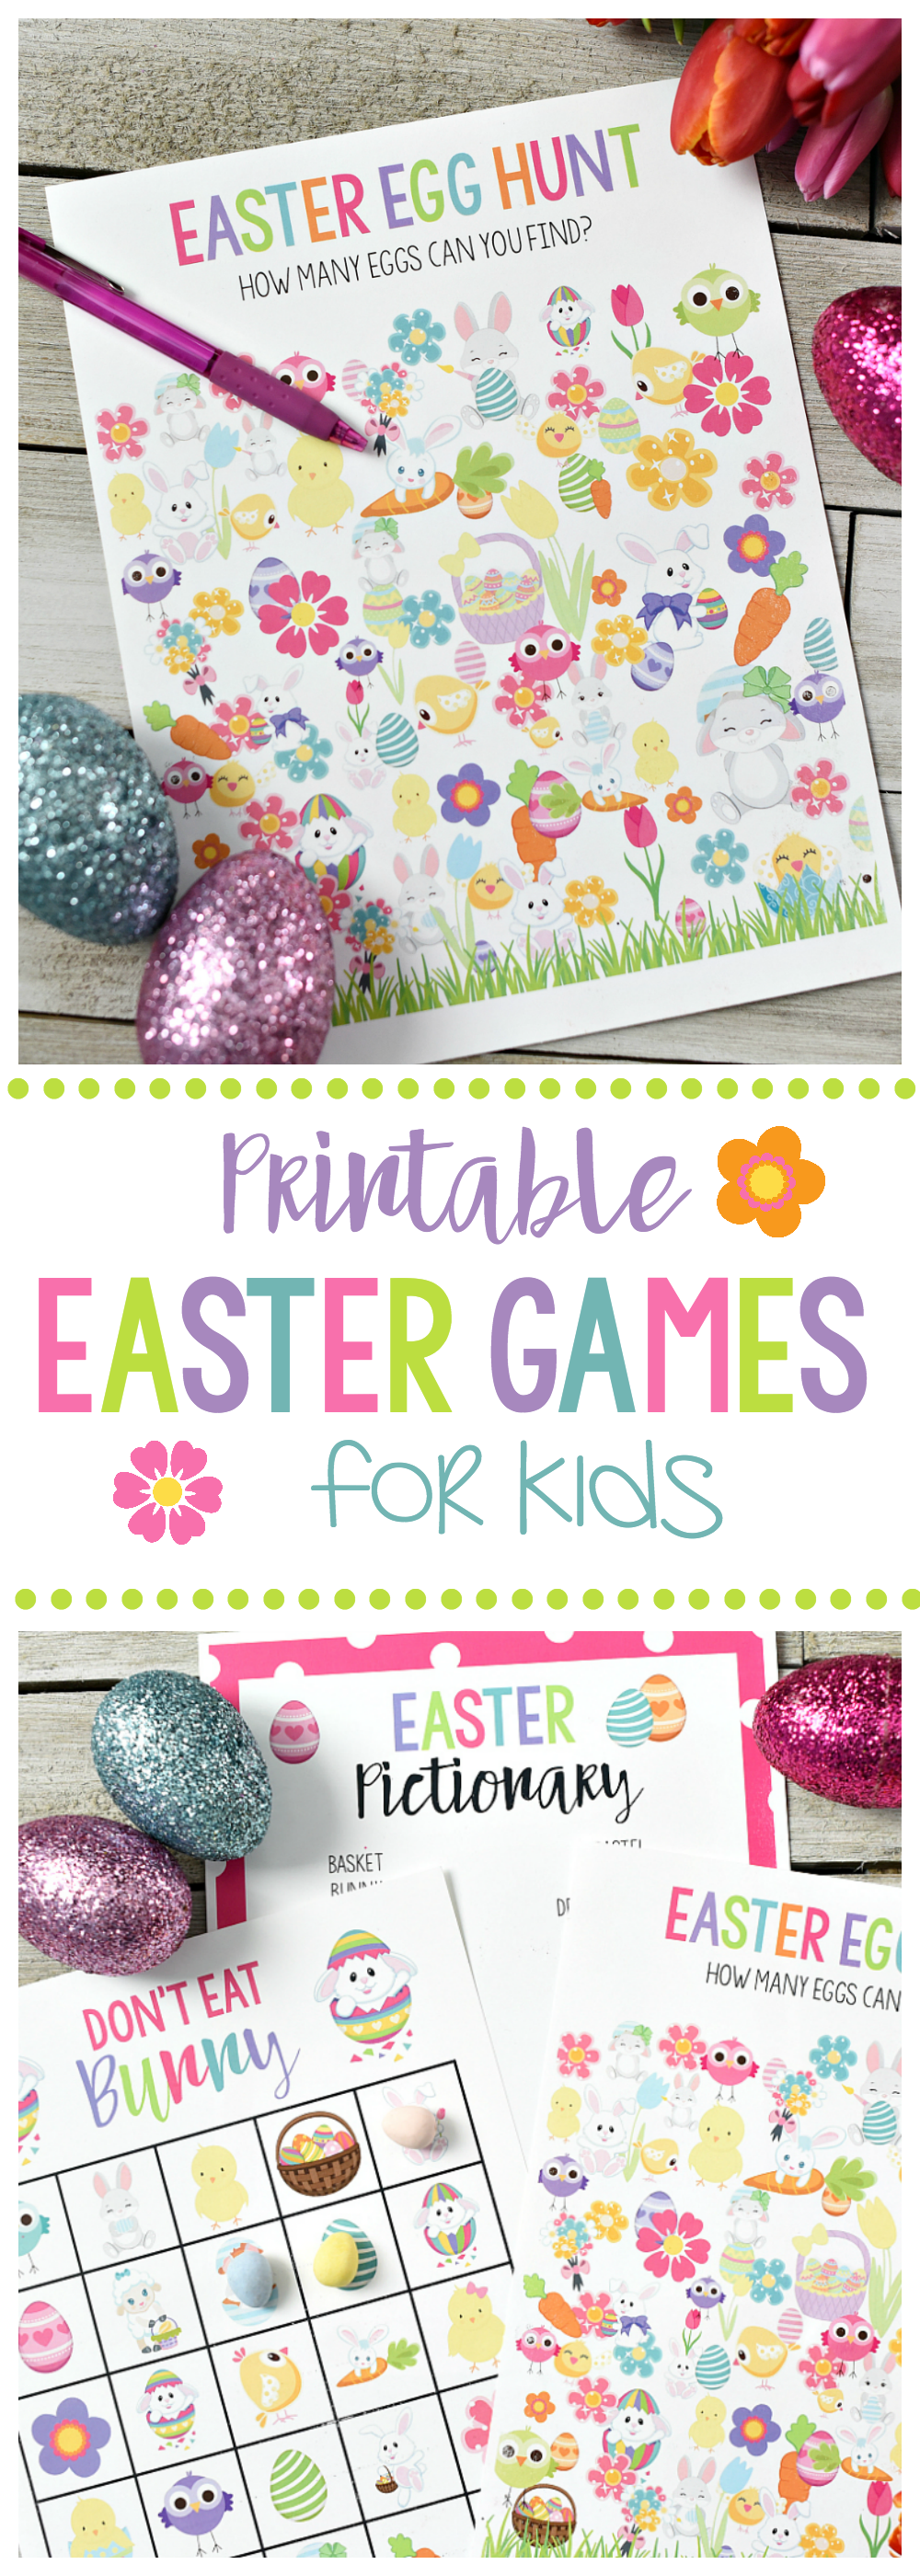 Free Printable Easter Games for Kids - Fun-Squared